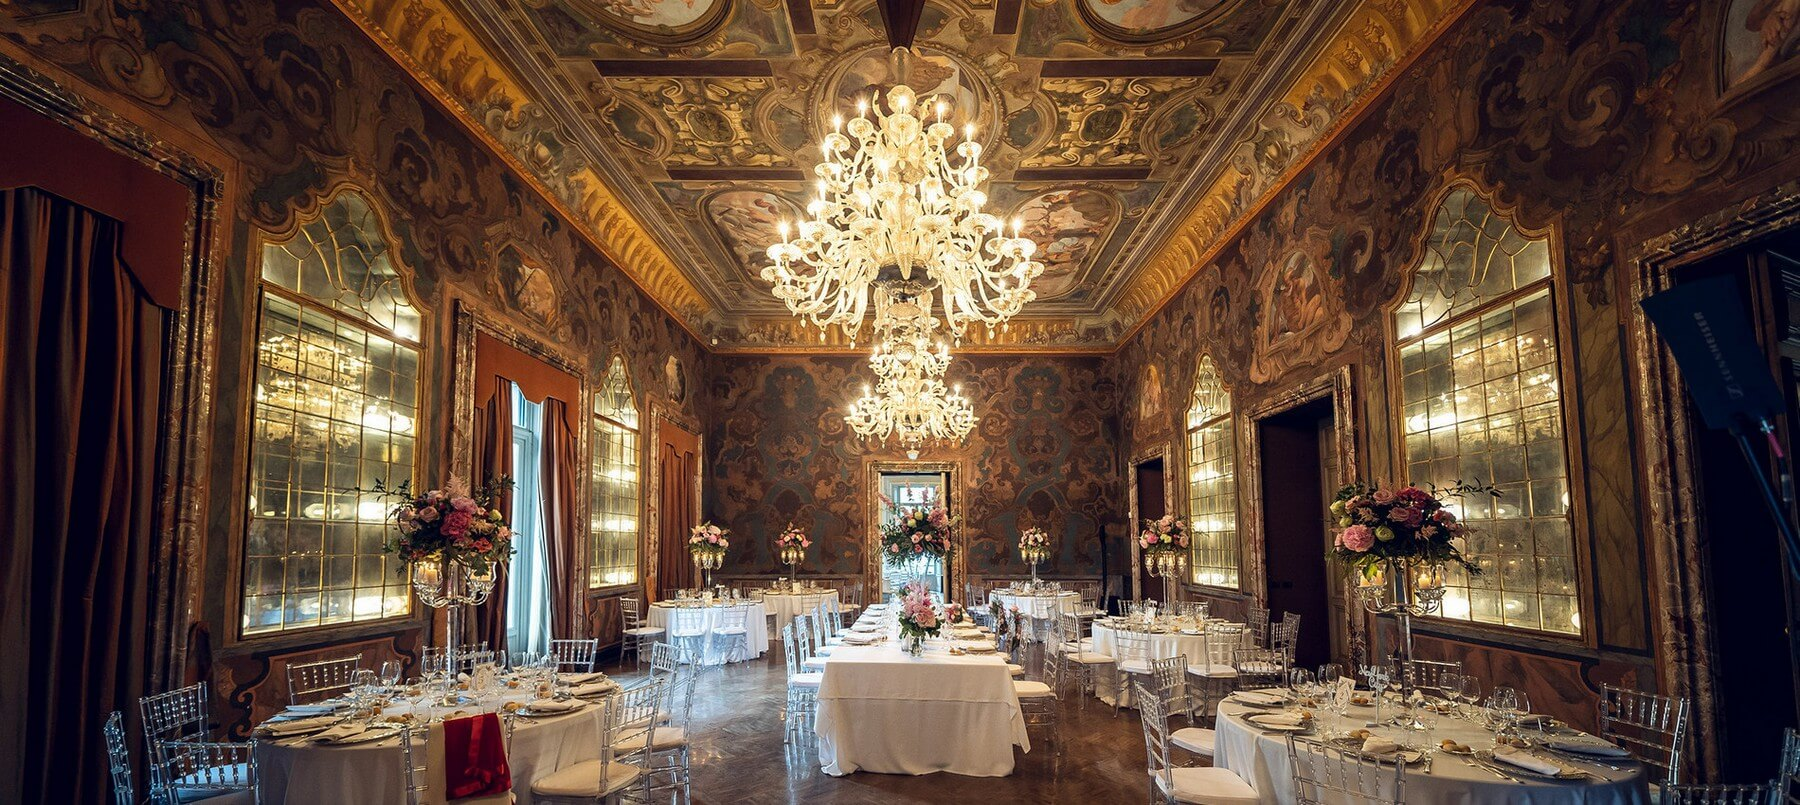 Villa Erba Weddings Villa Wedding Lake Como Italy